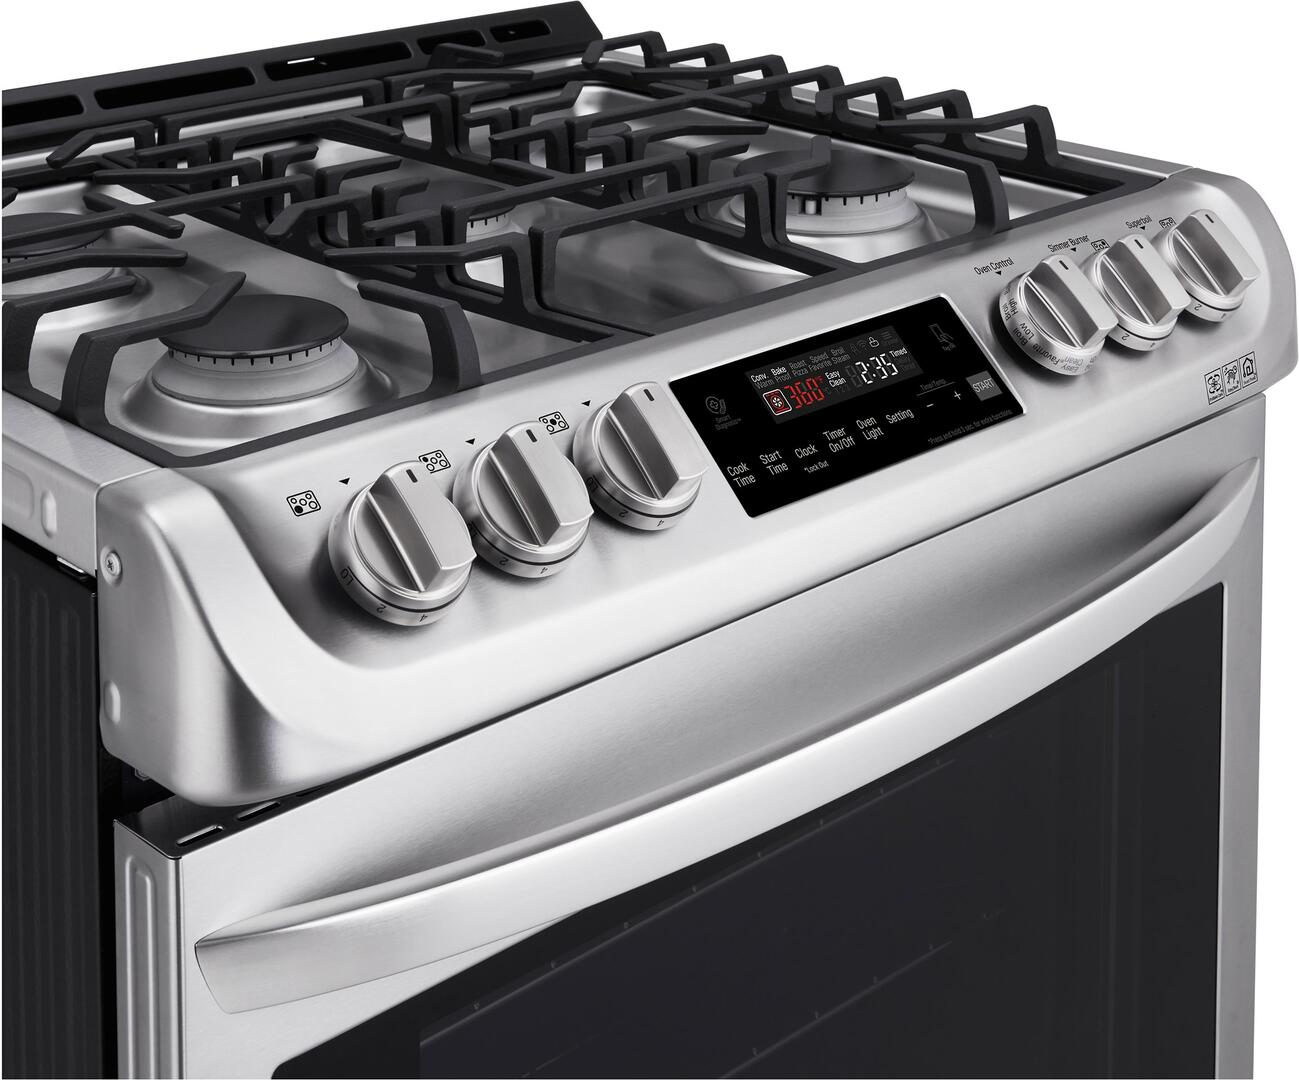 Kitchen gas stove top view -  Lg Control Panel View